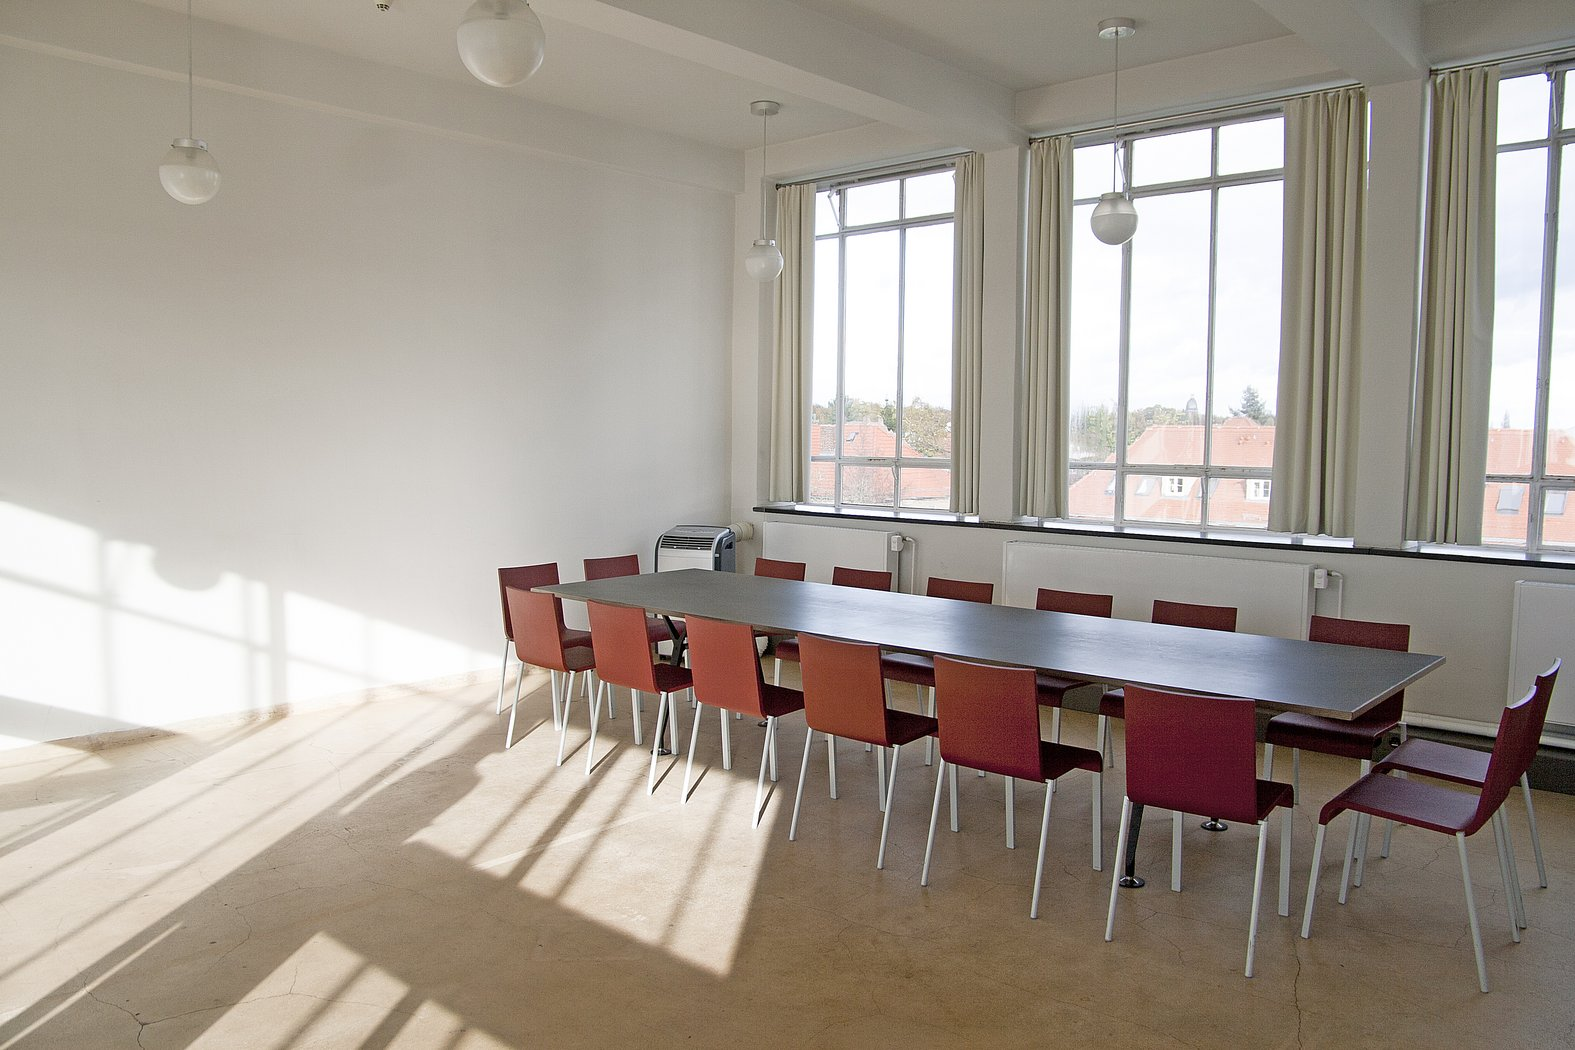 Fenster Bauhaus Event Rooms At The Bauhaus Building : Hire Rooms : Stiftung Bauhaus Dessau / Bauhaus Dessau Foundation